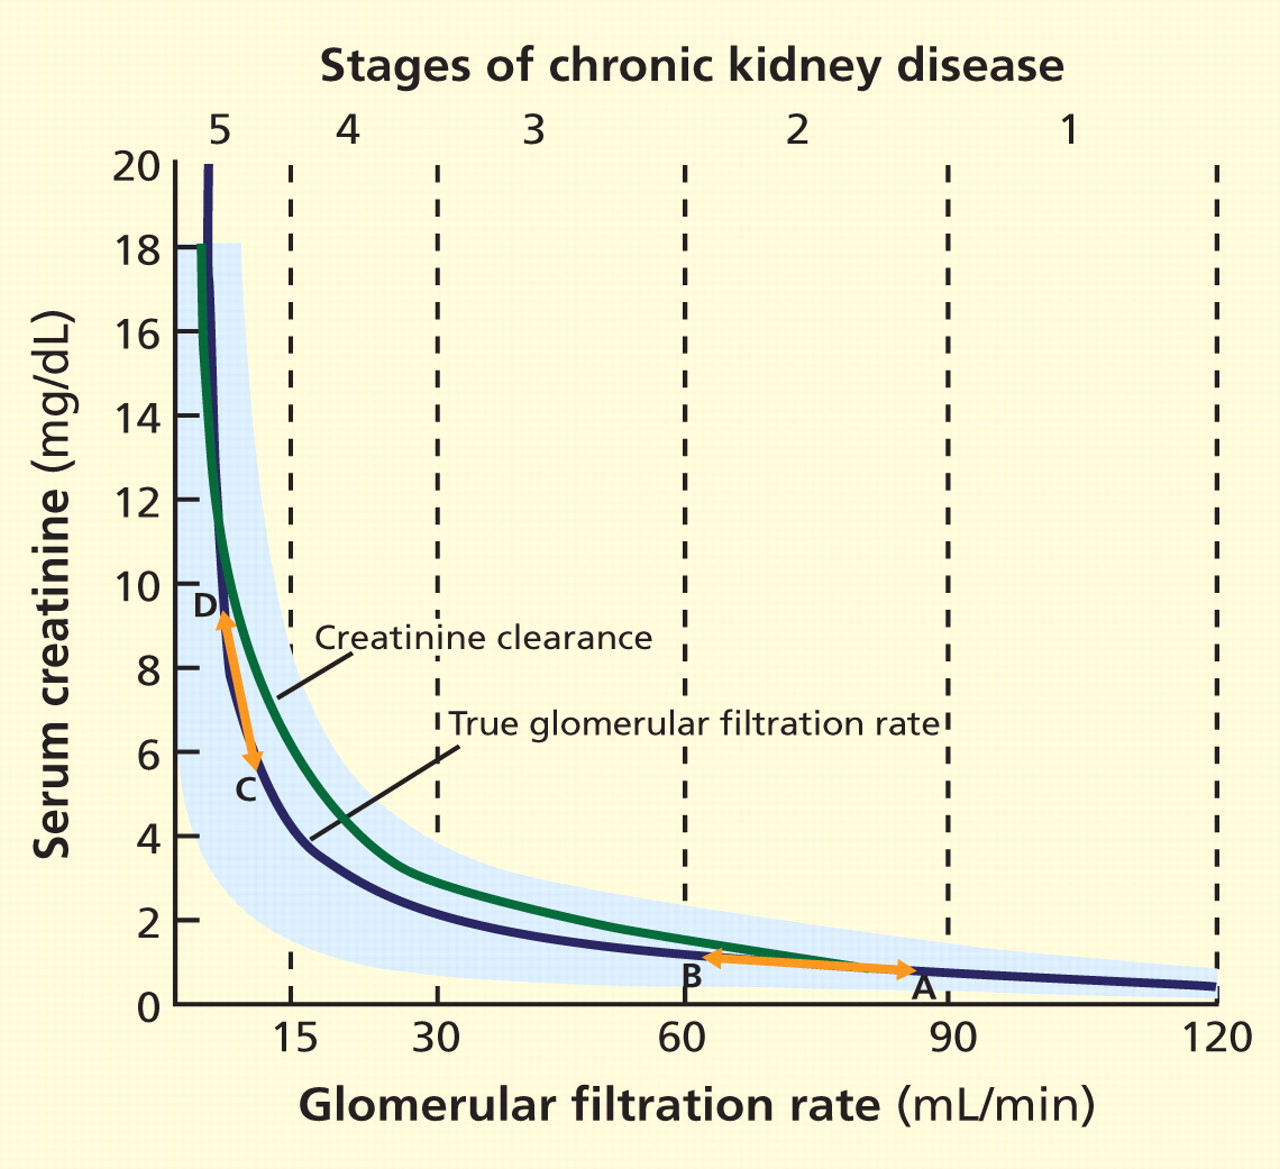 Gfr levels in older adults